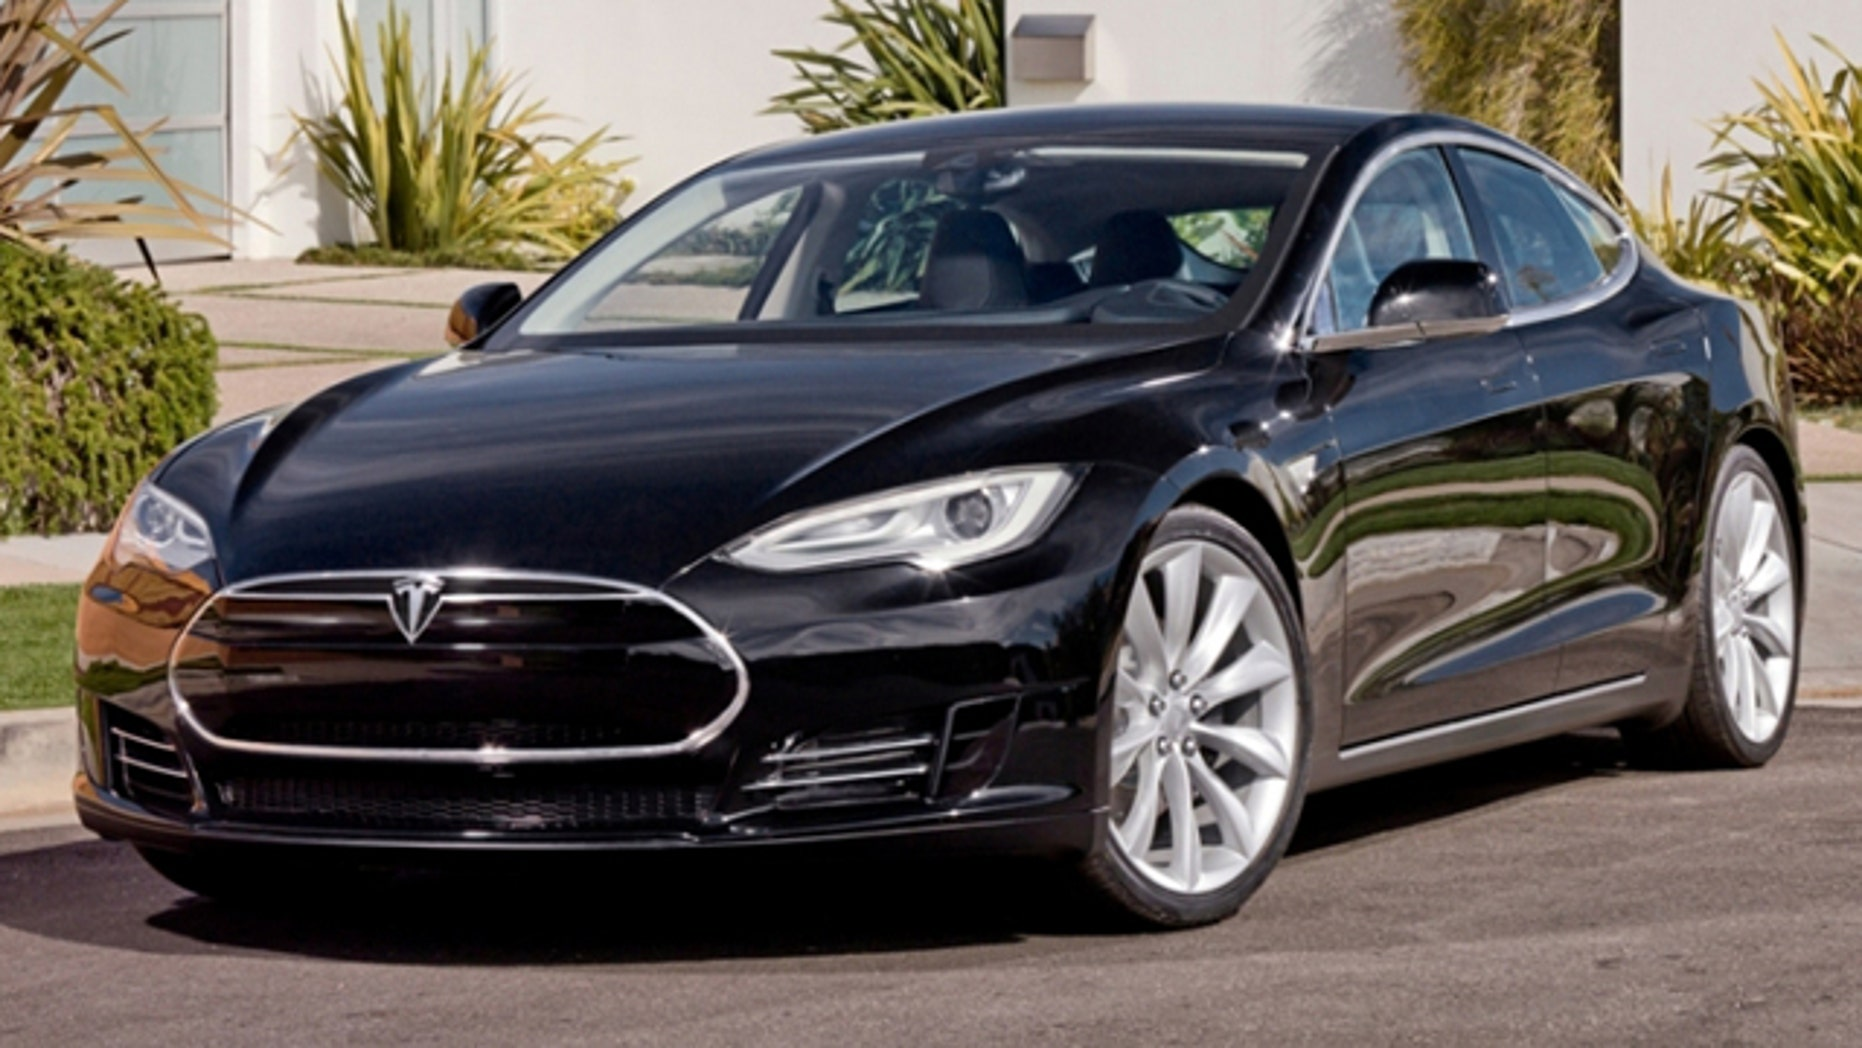 Tesla Model S Boasts 320 Mile Range One Hour Recharge Time